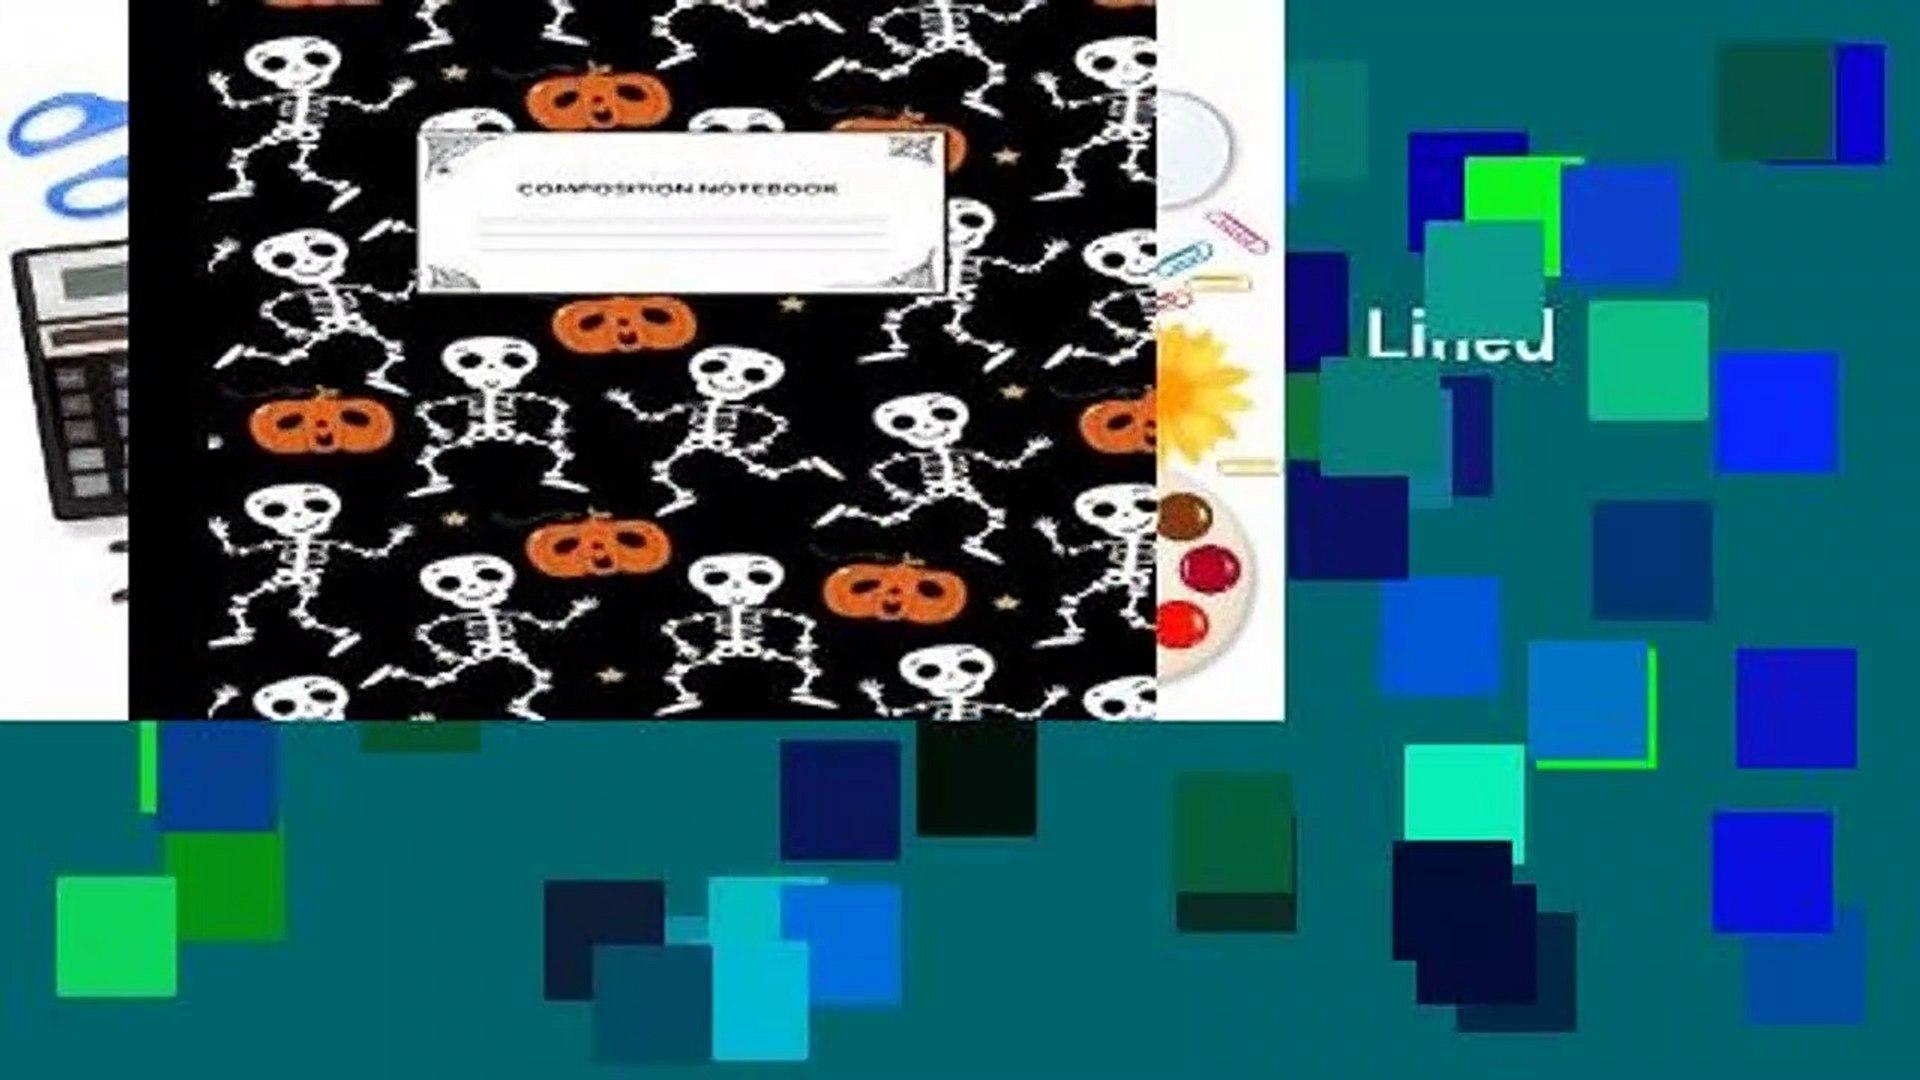 [Read] Composition Notebook: Blank Lined College Ruled Notebook Journal   Halloween Themed  